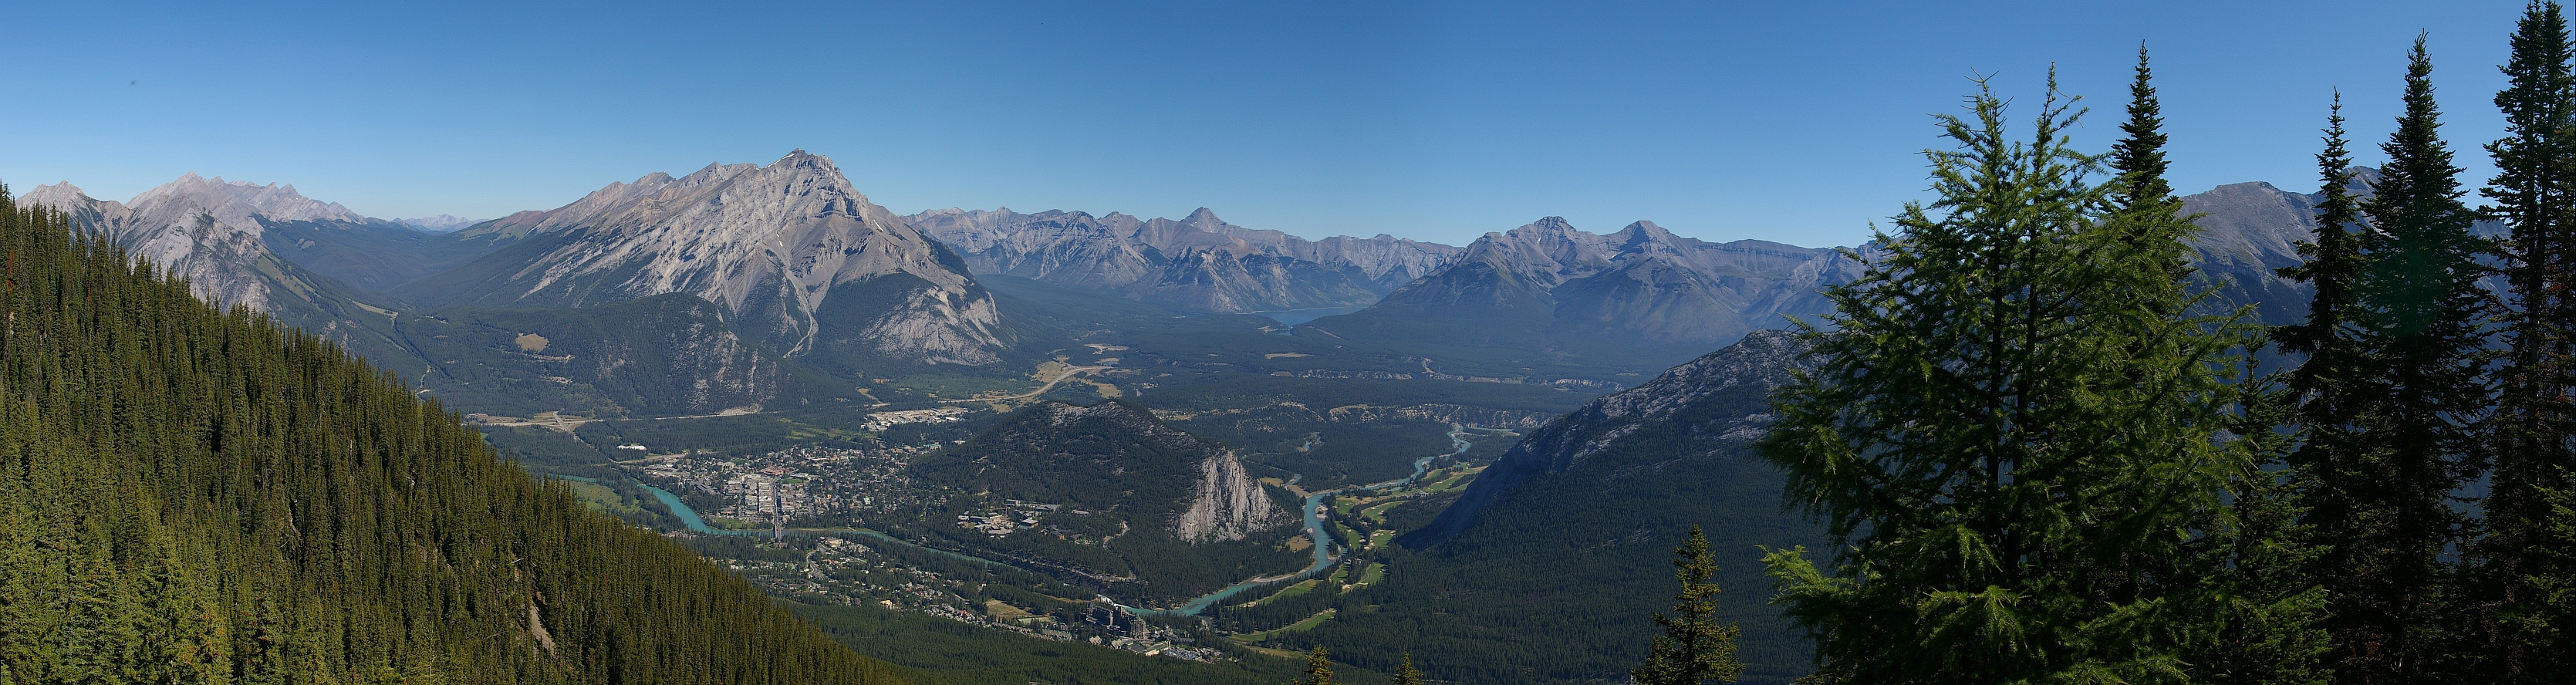 pano4_panoramic_view_from_sulphur_mountain_180.jpg